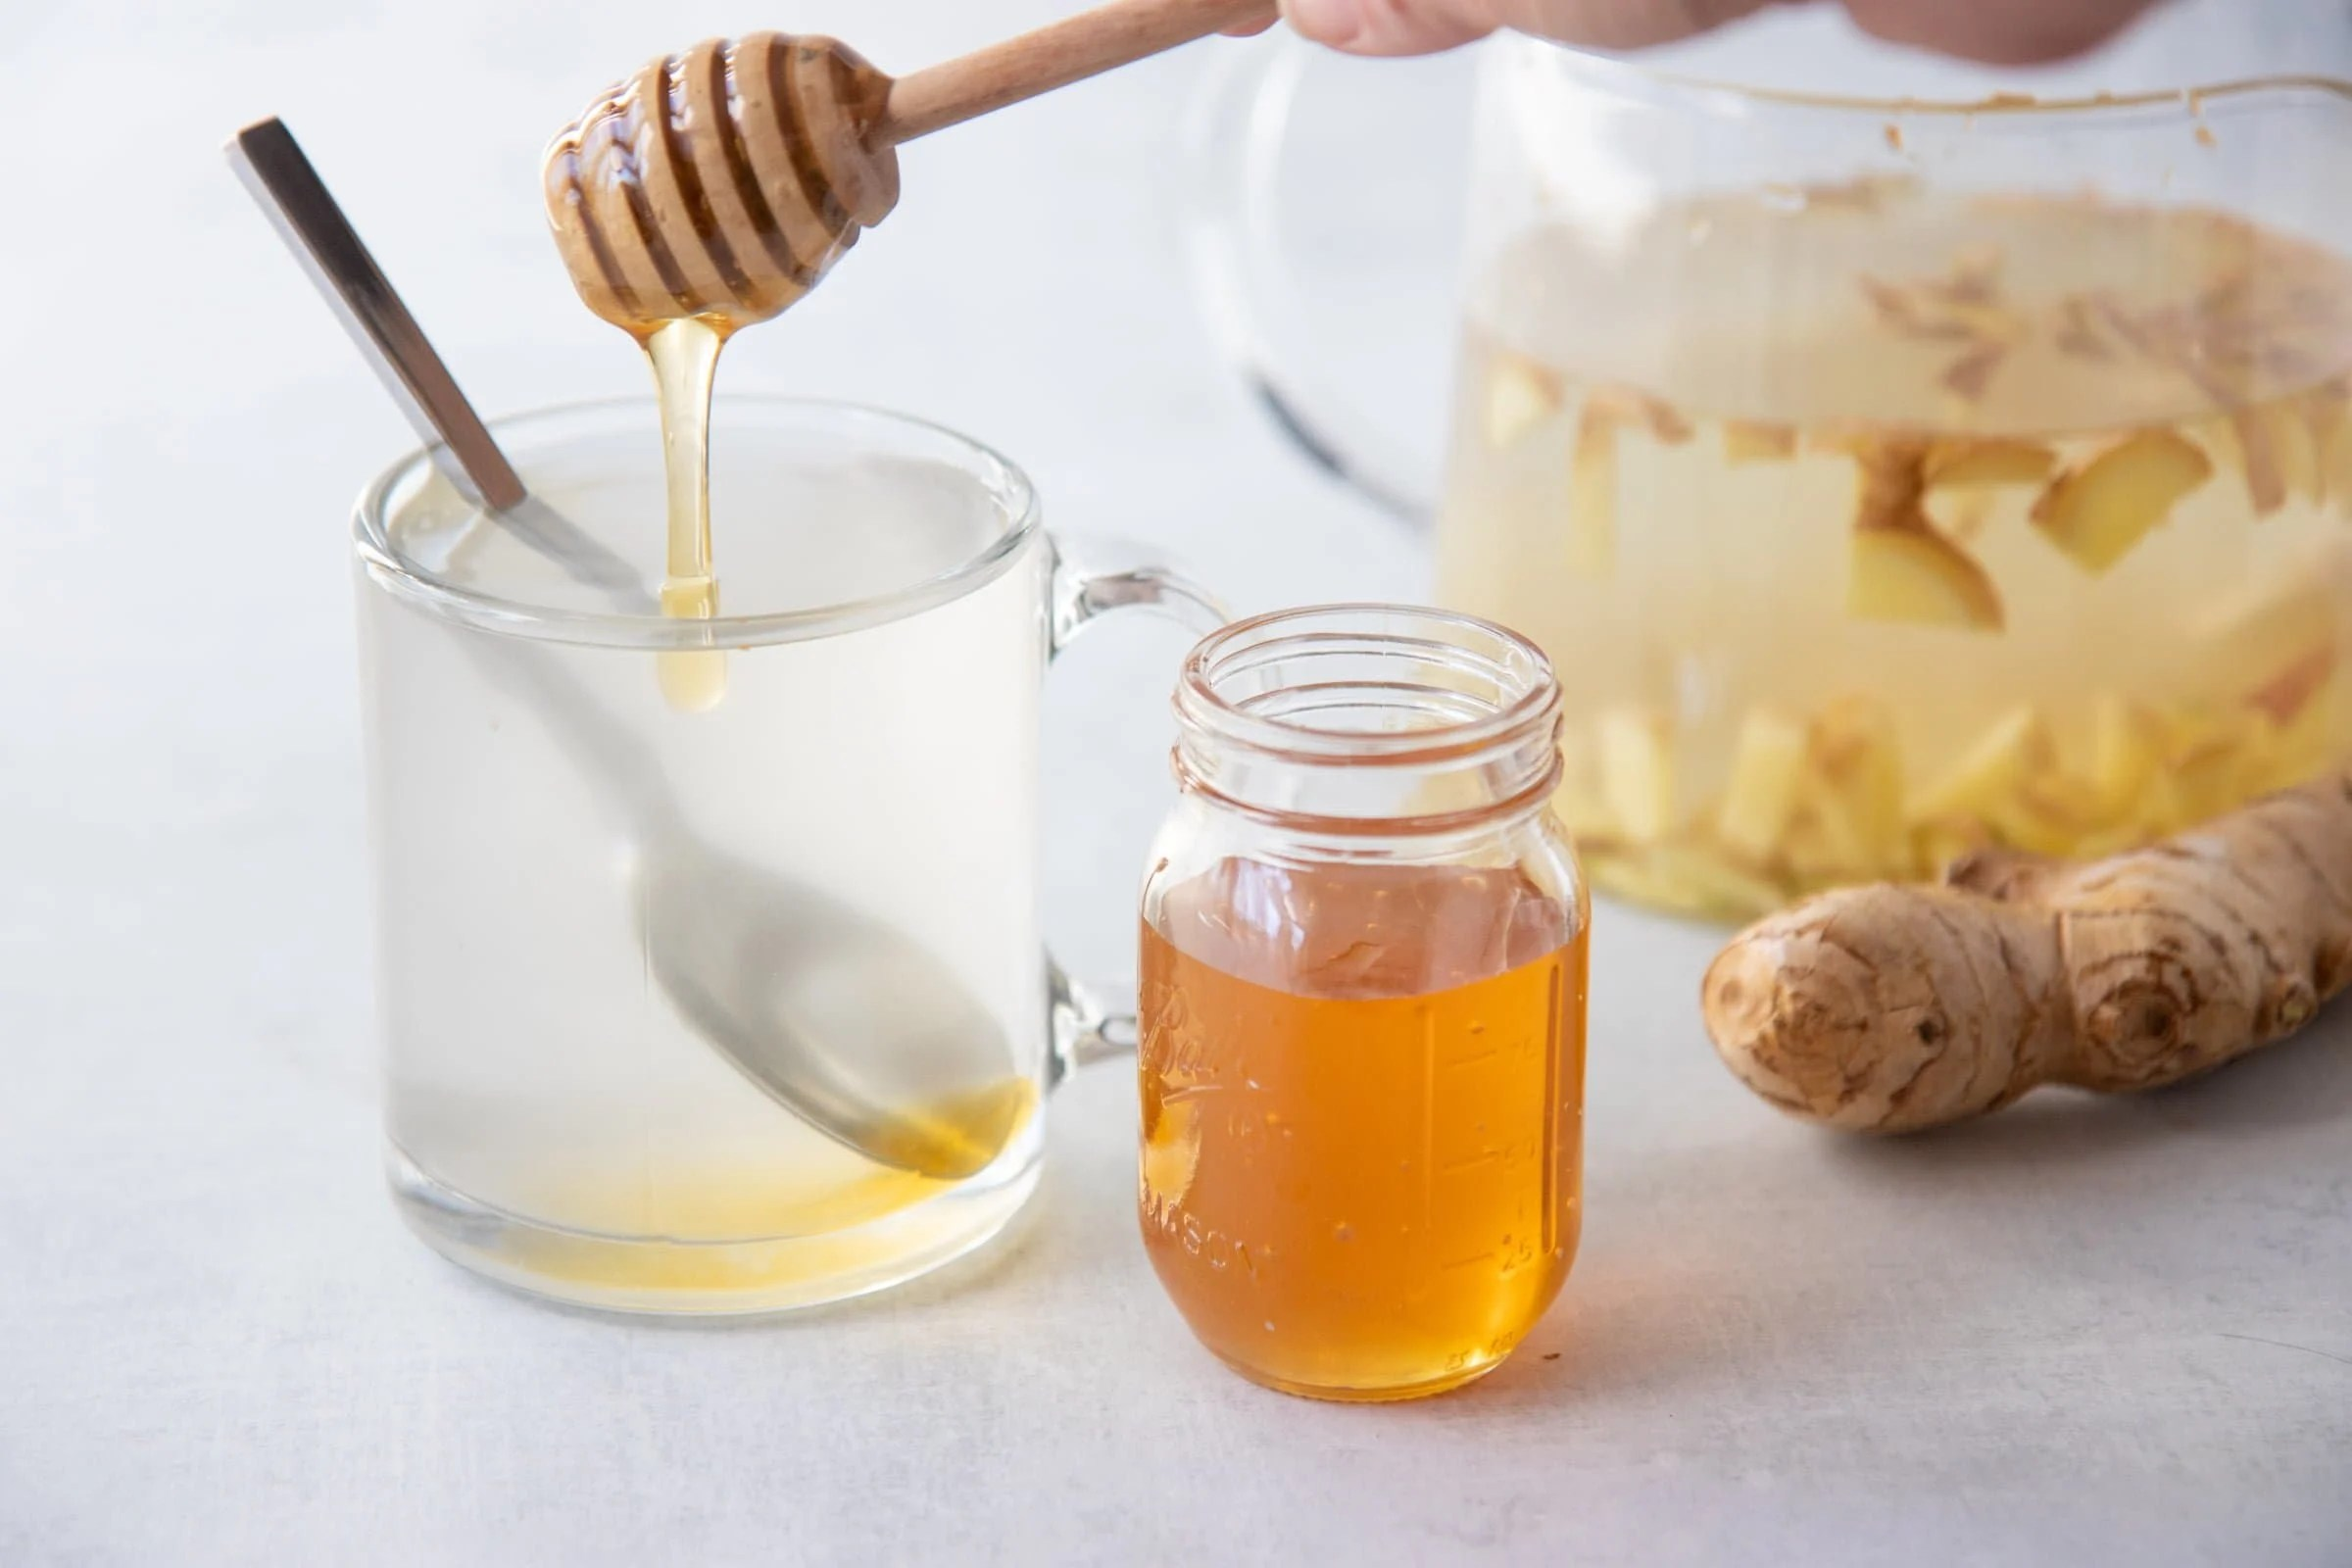 A honey dipper drizzles honey into a clear mug of ginger tea with a jar of honey and pitcher of tea alongside.